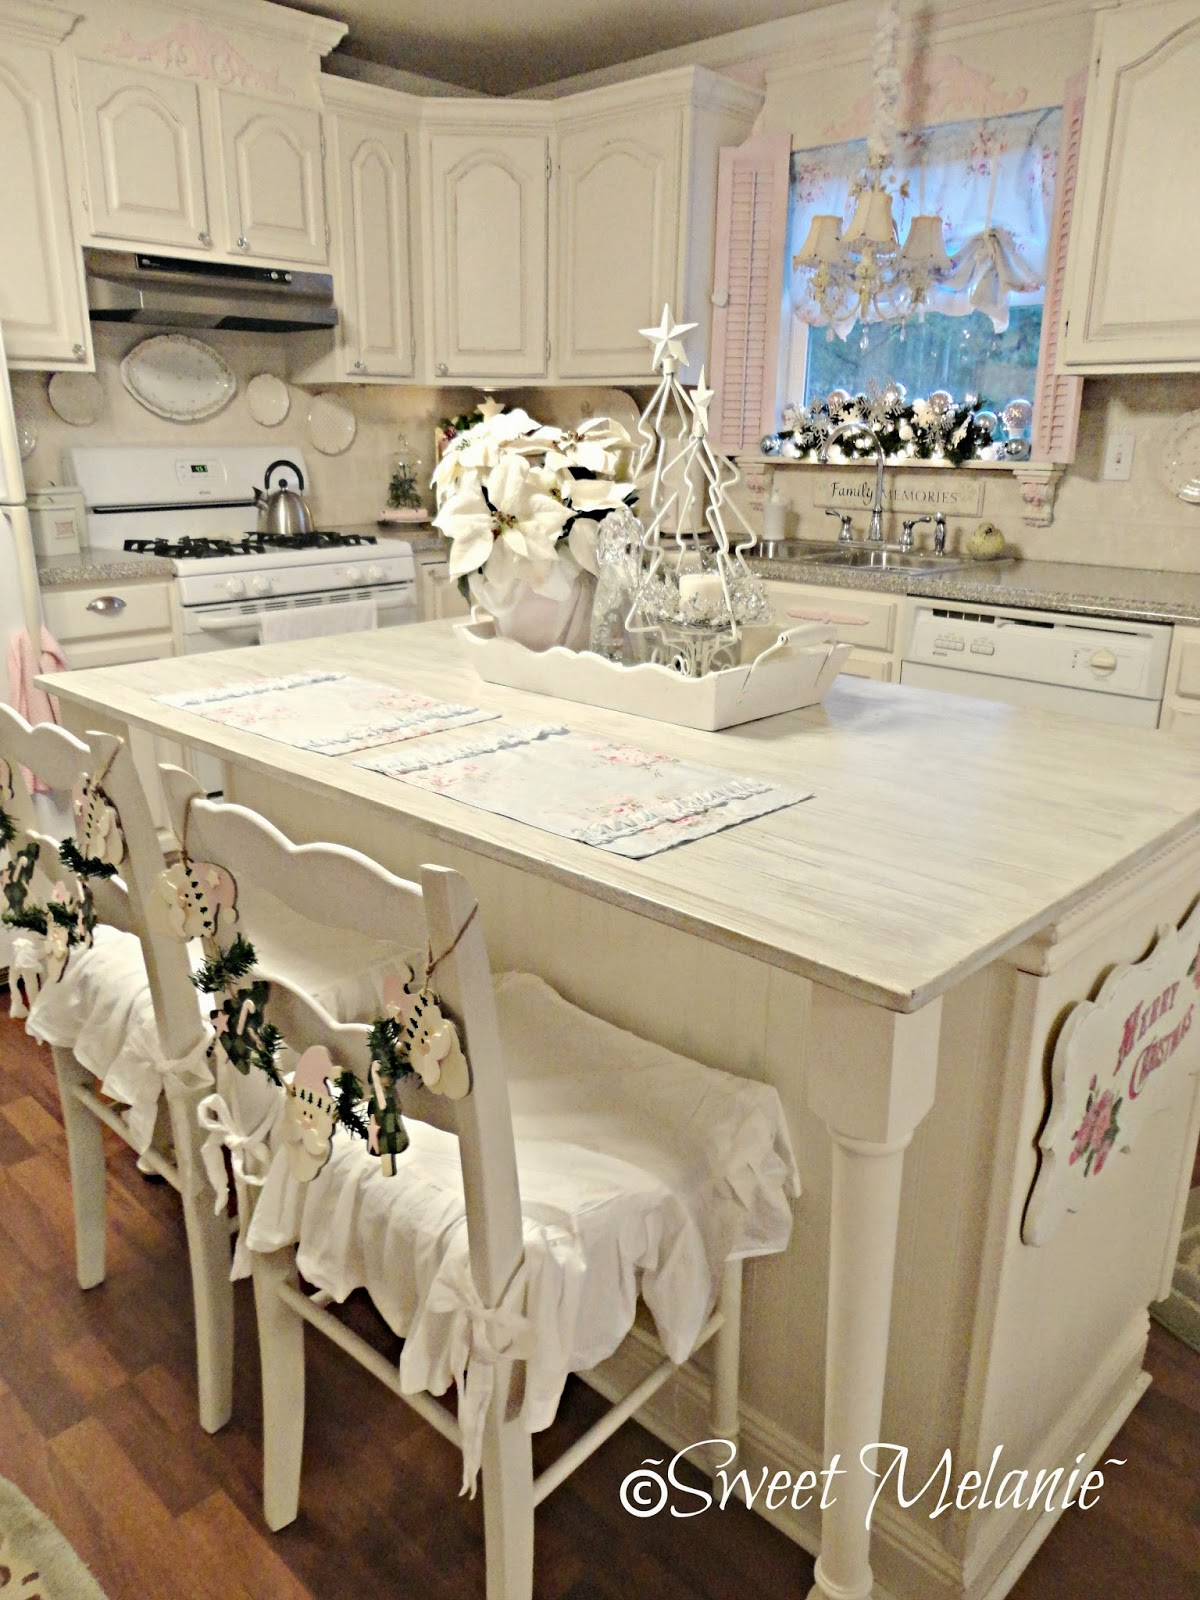 Sweet Melanie~: Our Christmas Kitchen